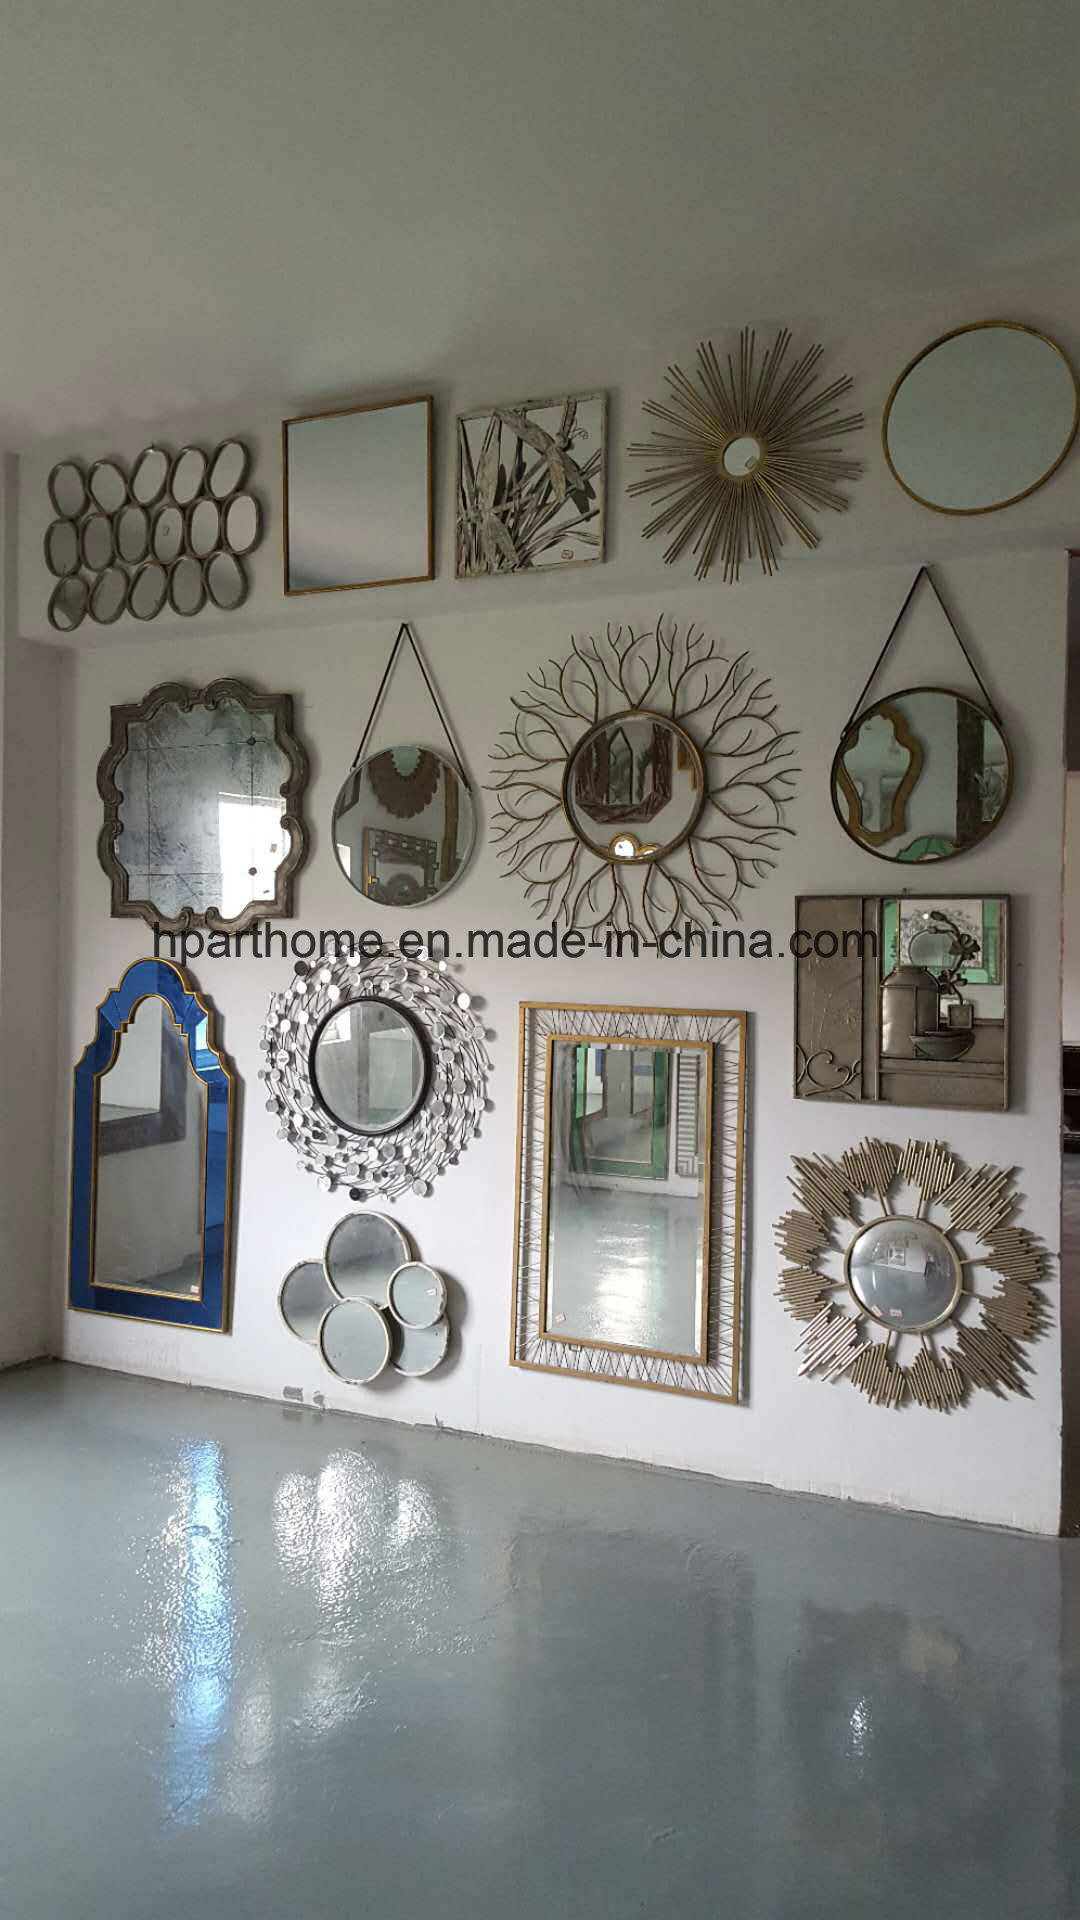 Flat Decorative Mirror Collection Framed In Brushed Gold Finish